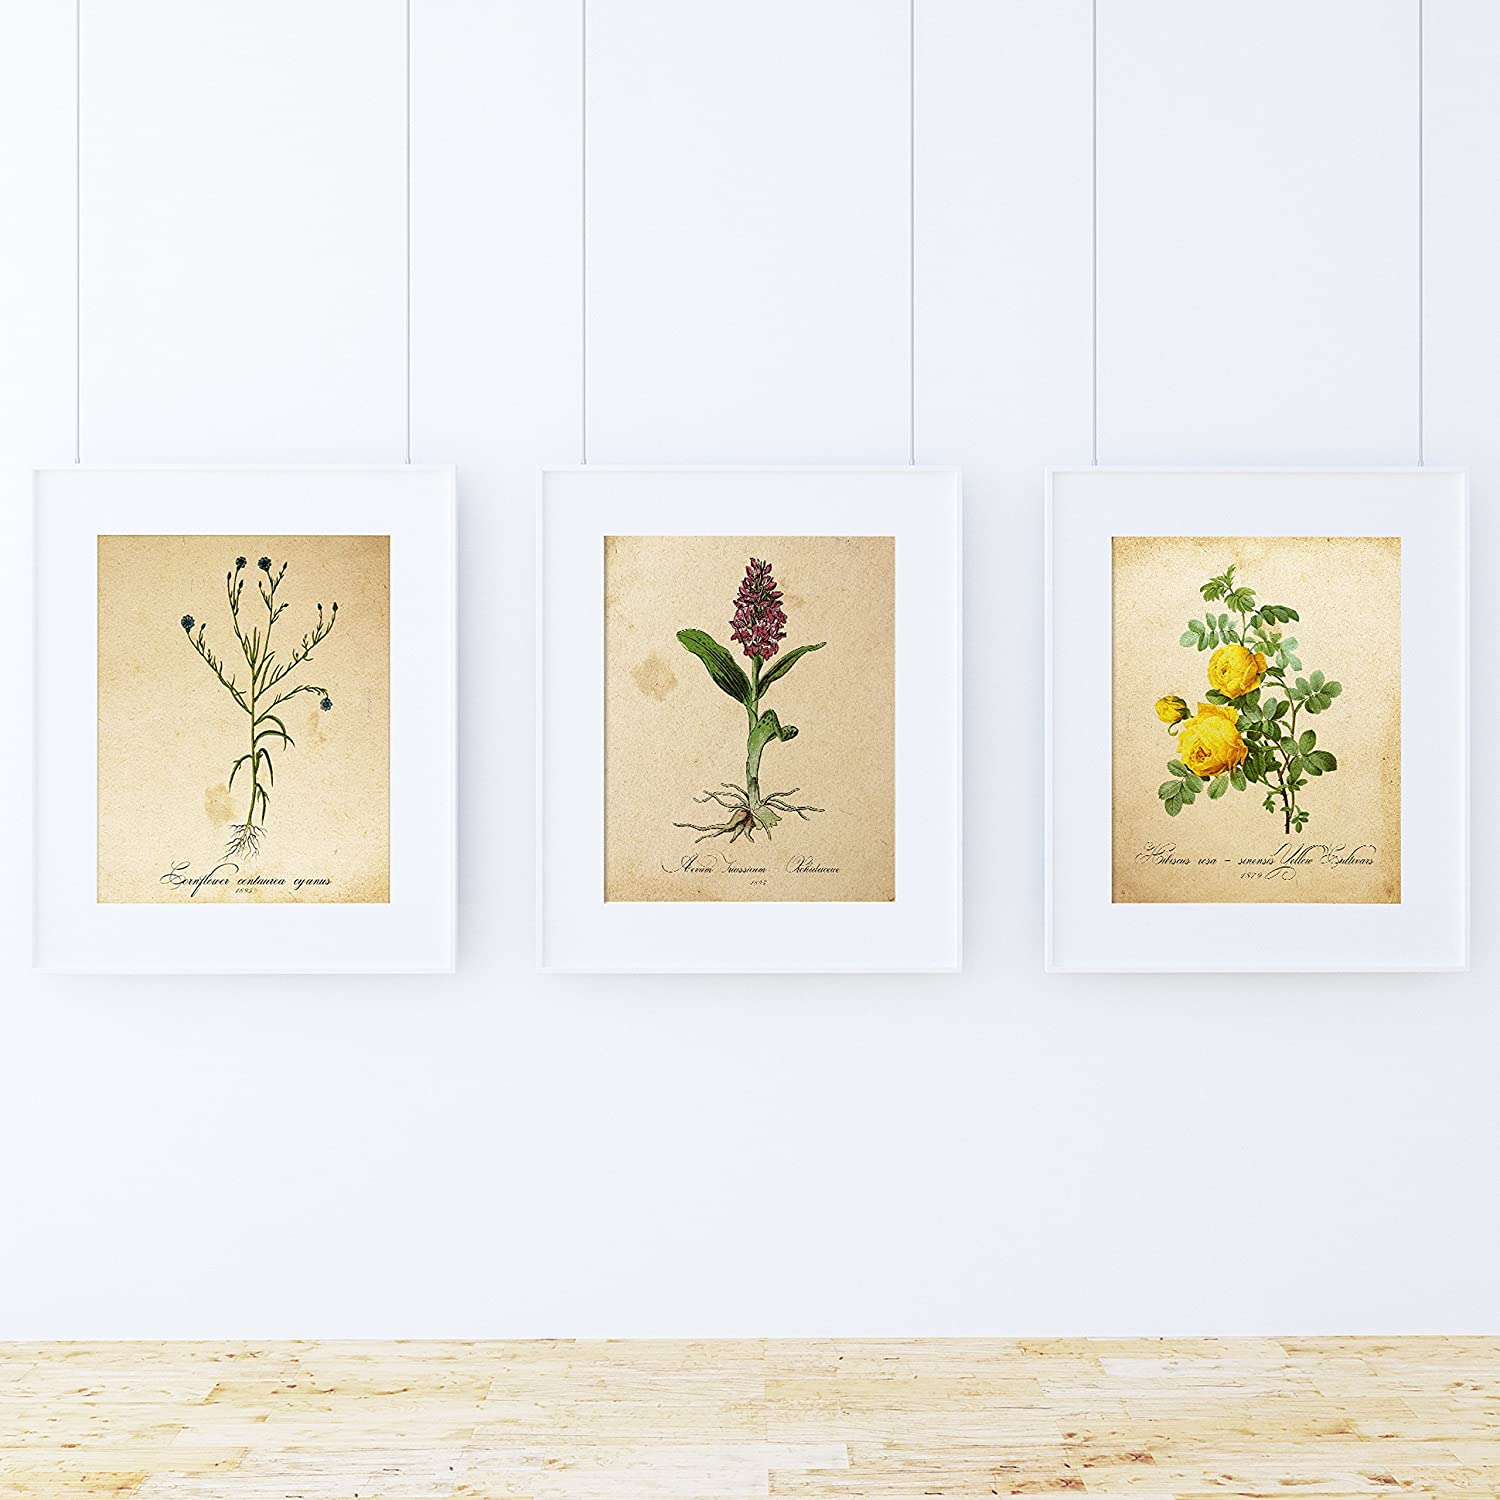 Nacnic Sense foil Pack. Posters with Pictures of Botany. Home Decoration. Sheets for framing. 250 Grams Paper